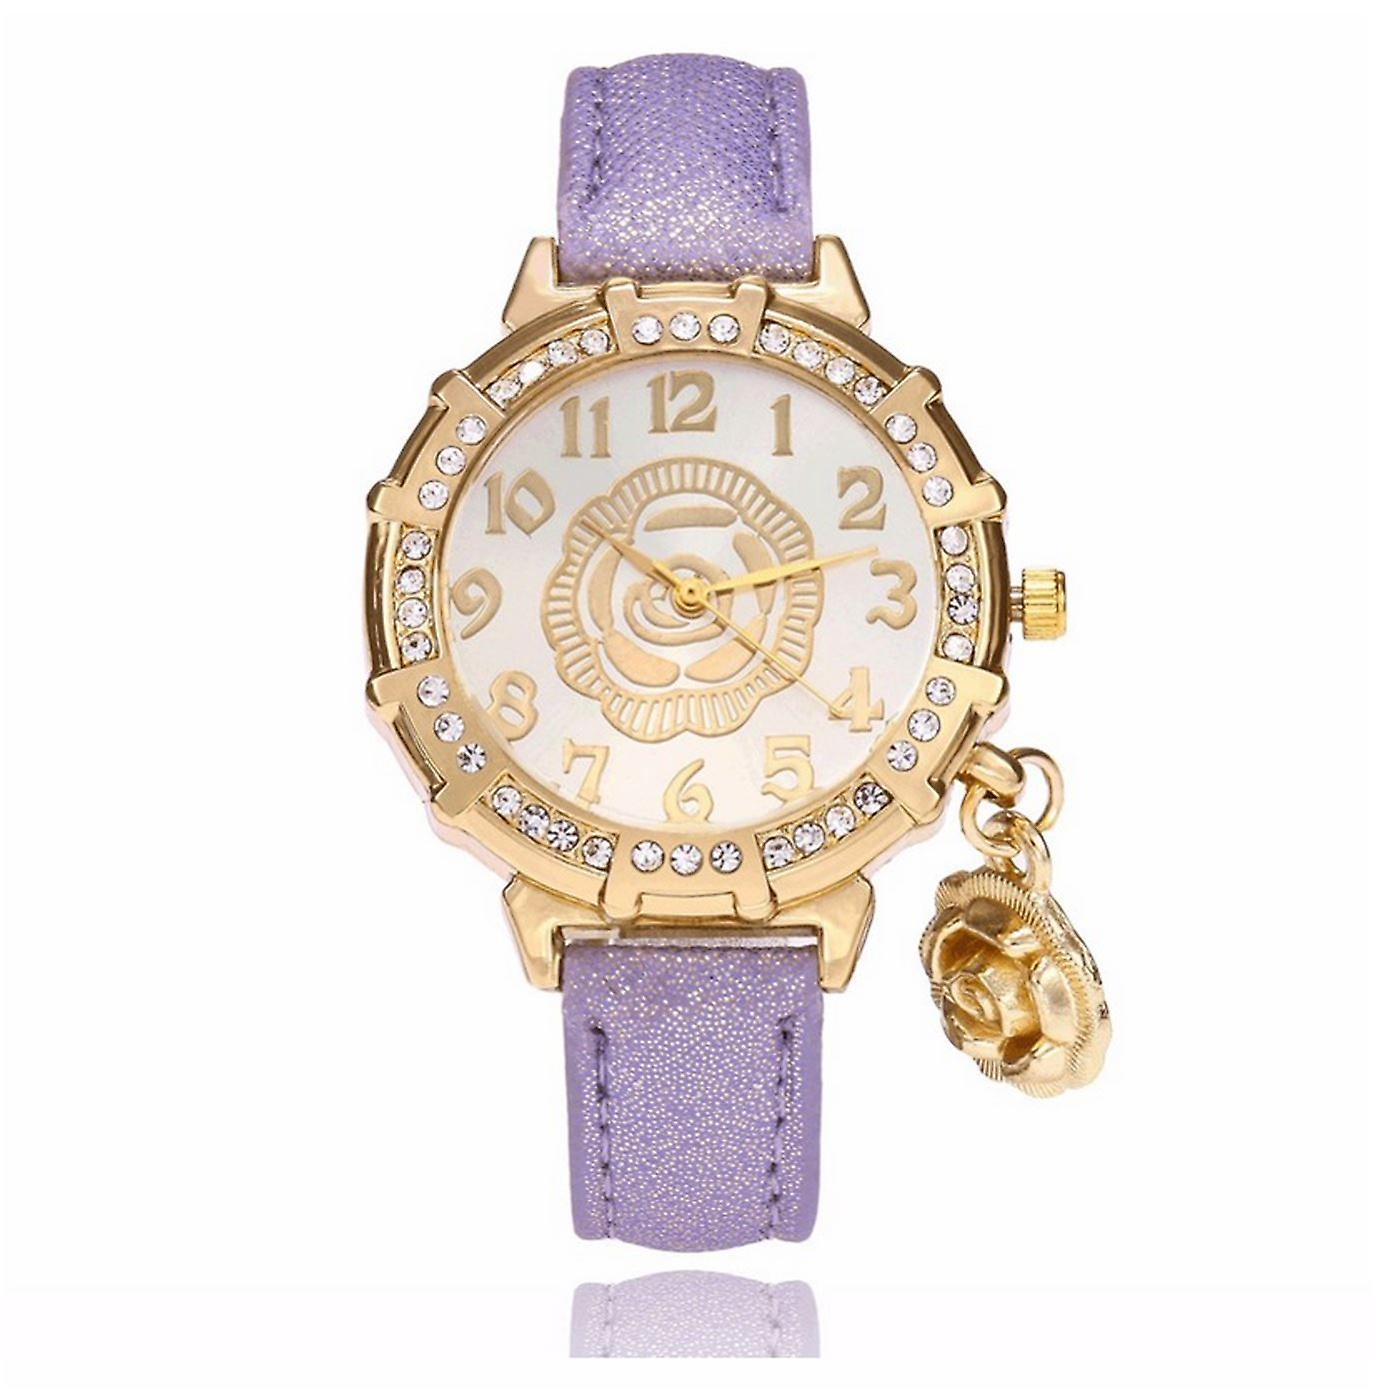 Classy Yellow Gold Flower Watch Luxury Stones Elegant Time PURPLE